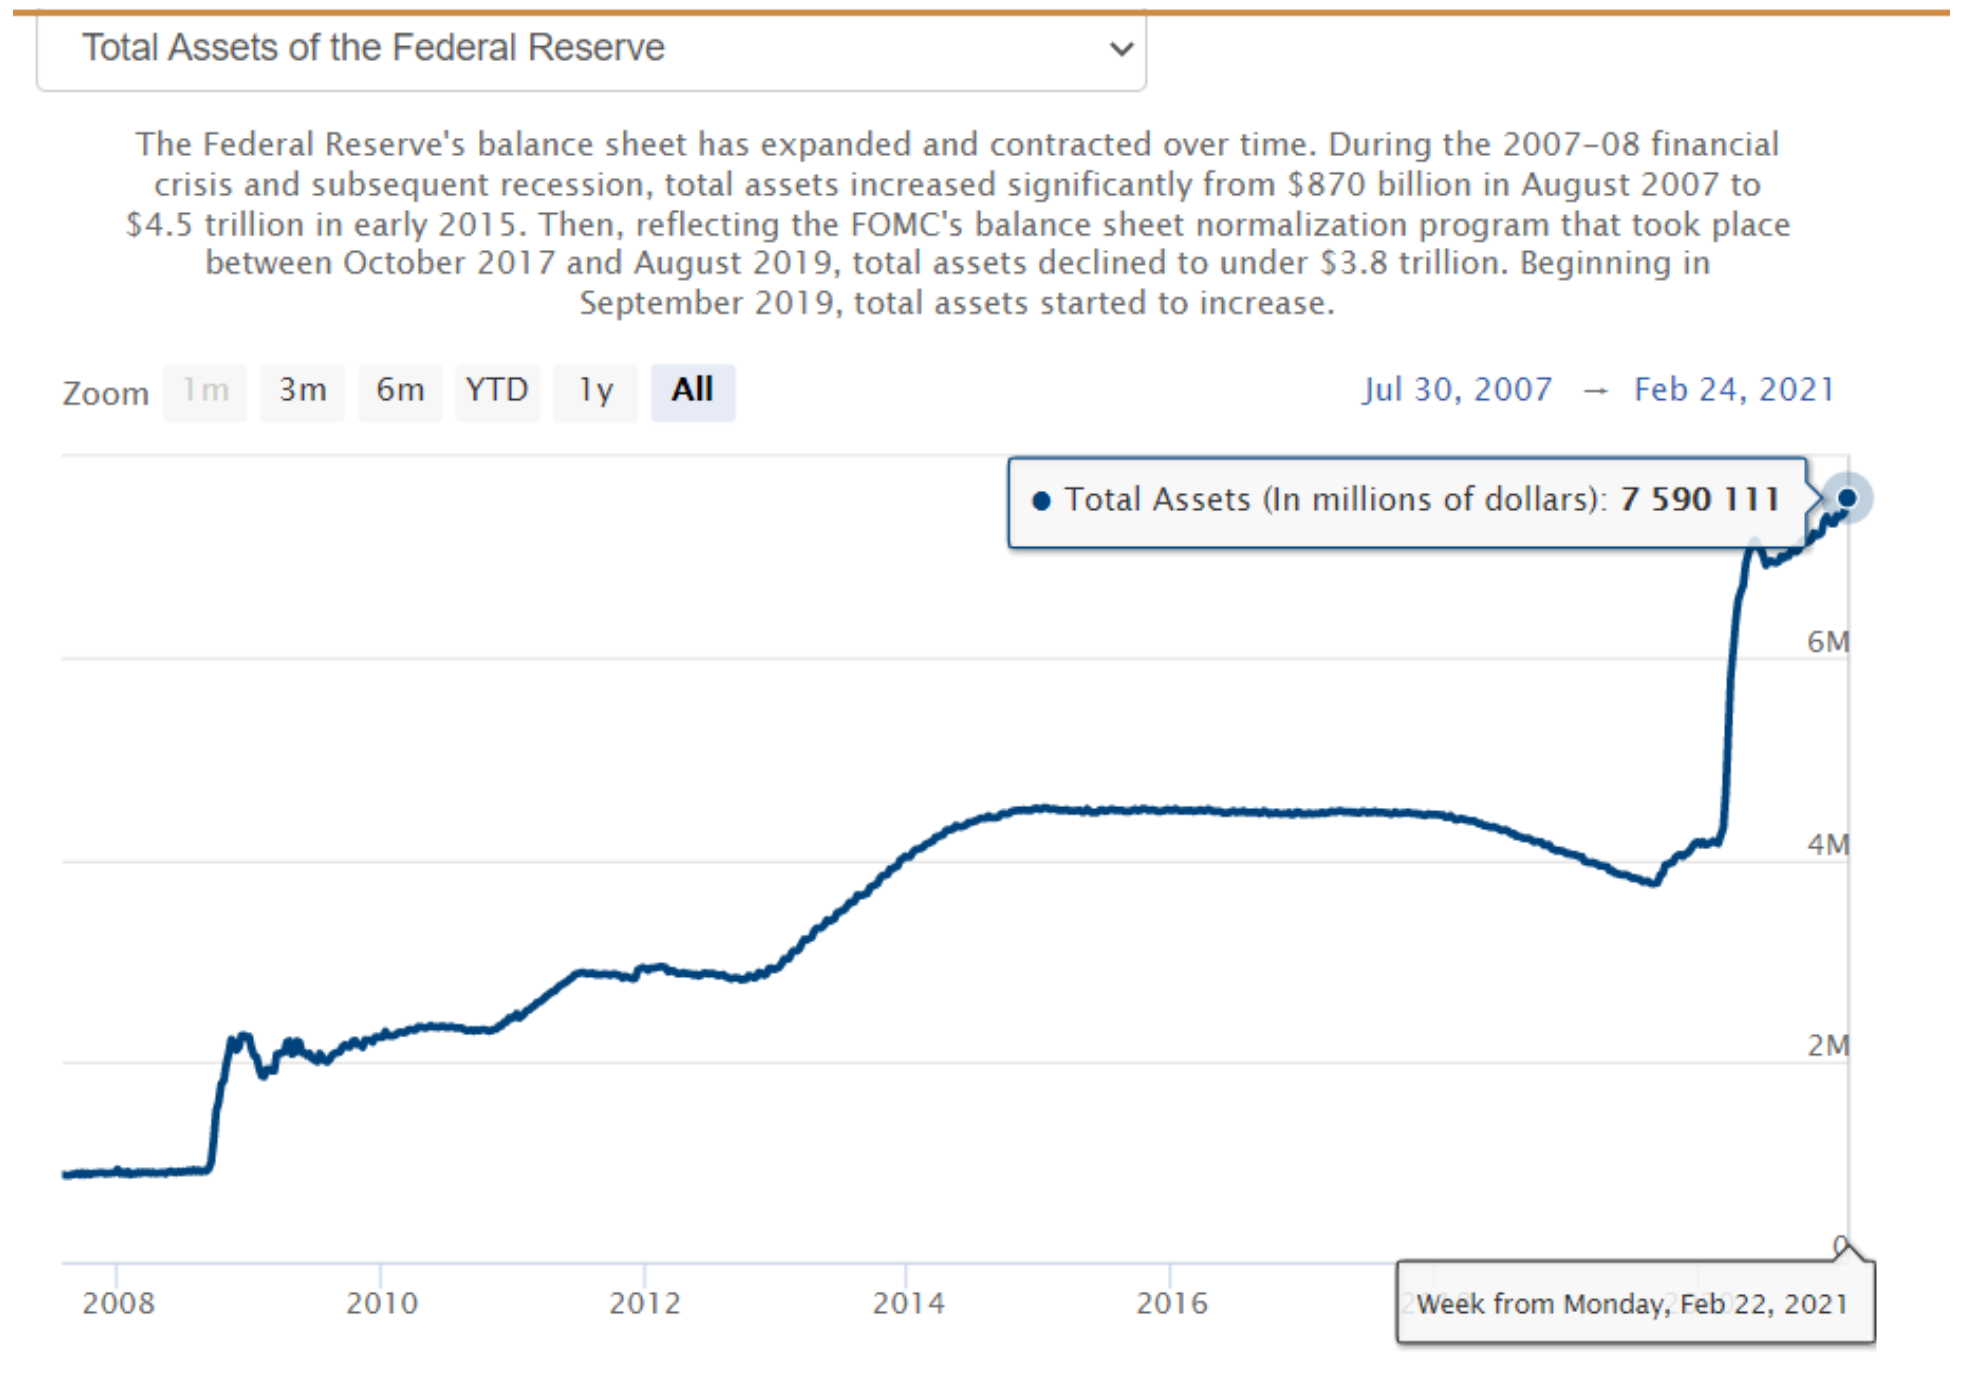 Total Assets of the Federal Reserve